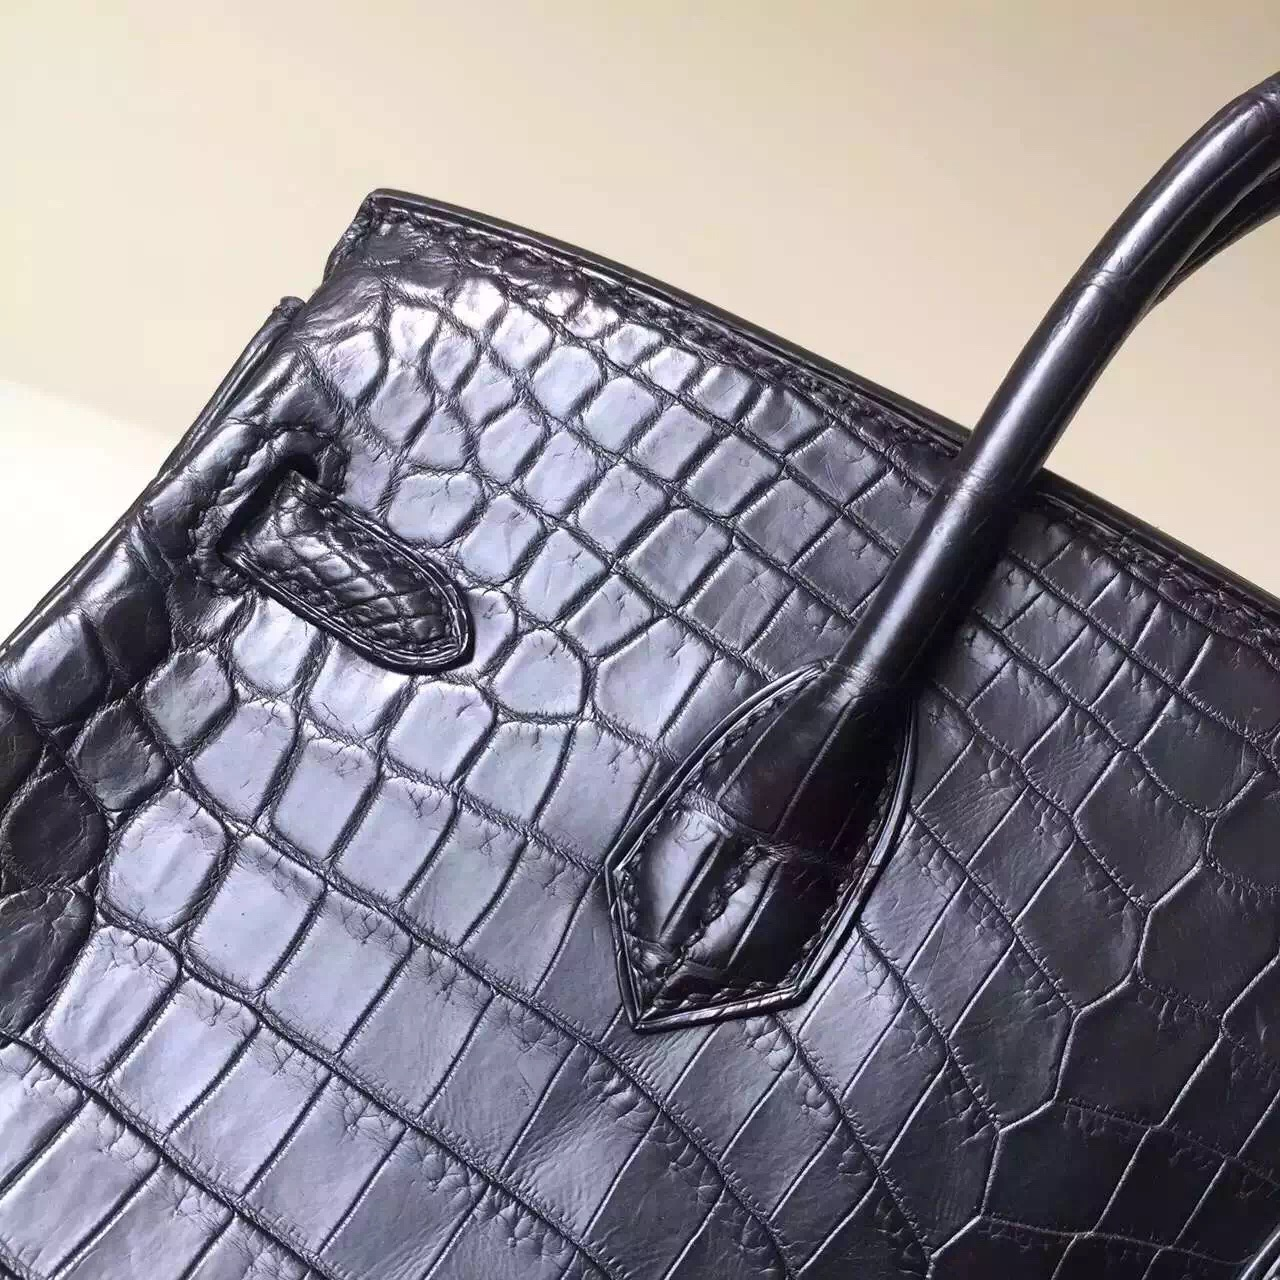 Hand Stitching Hermes CK89 Black Crocodile Matt Leather Birkin25 Bag